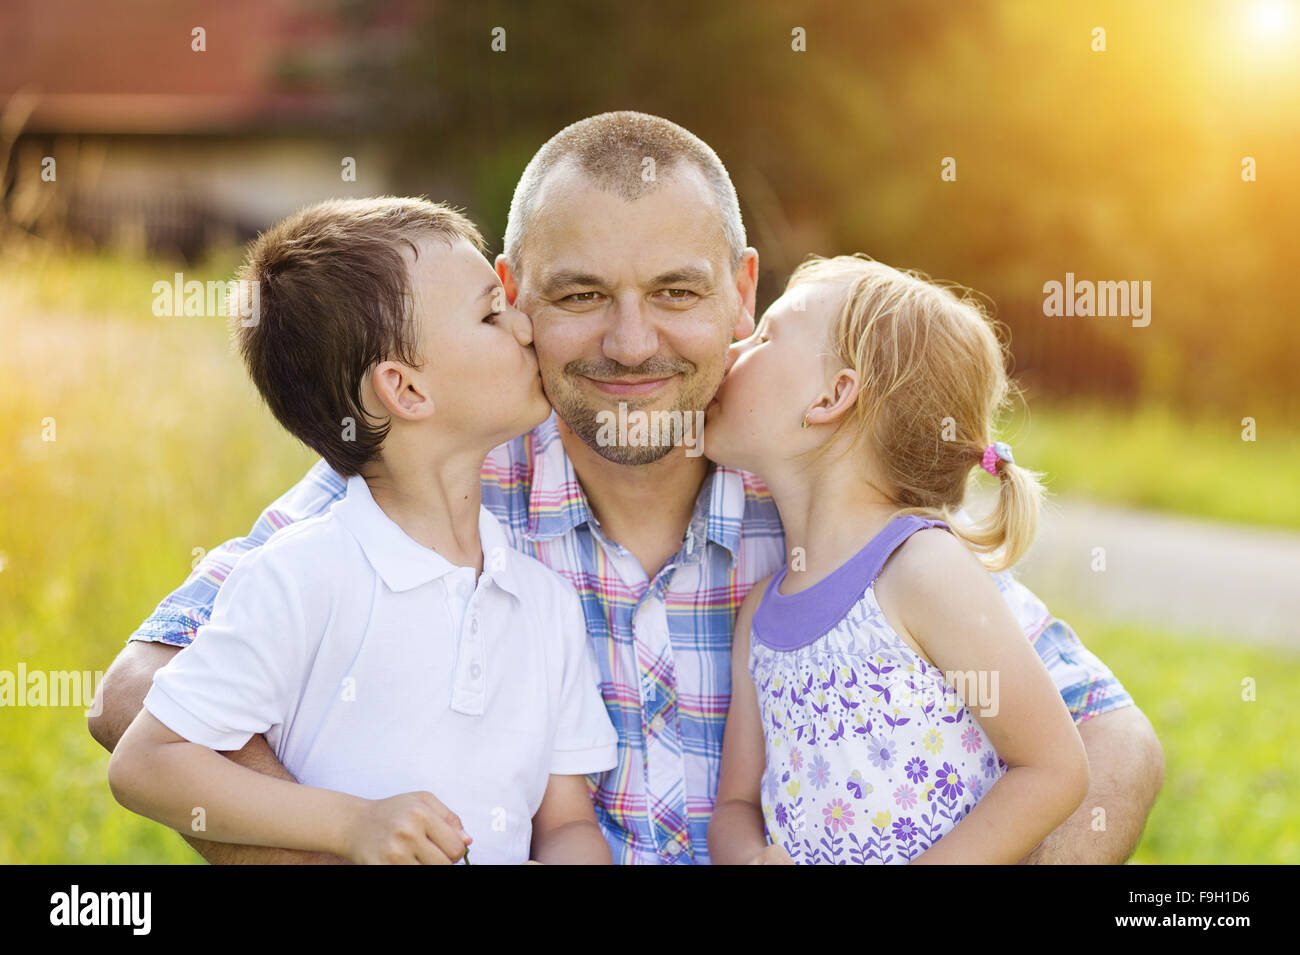 Father with his two children spending time together outside in green nature. - Stock Image